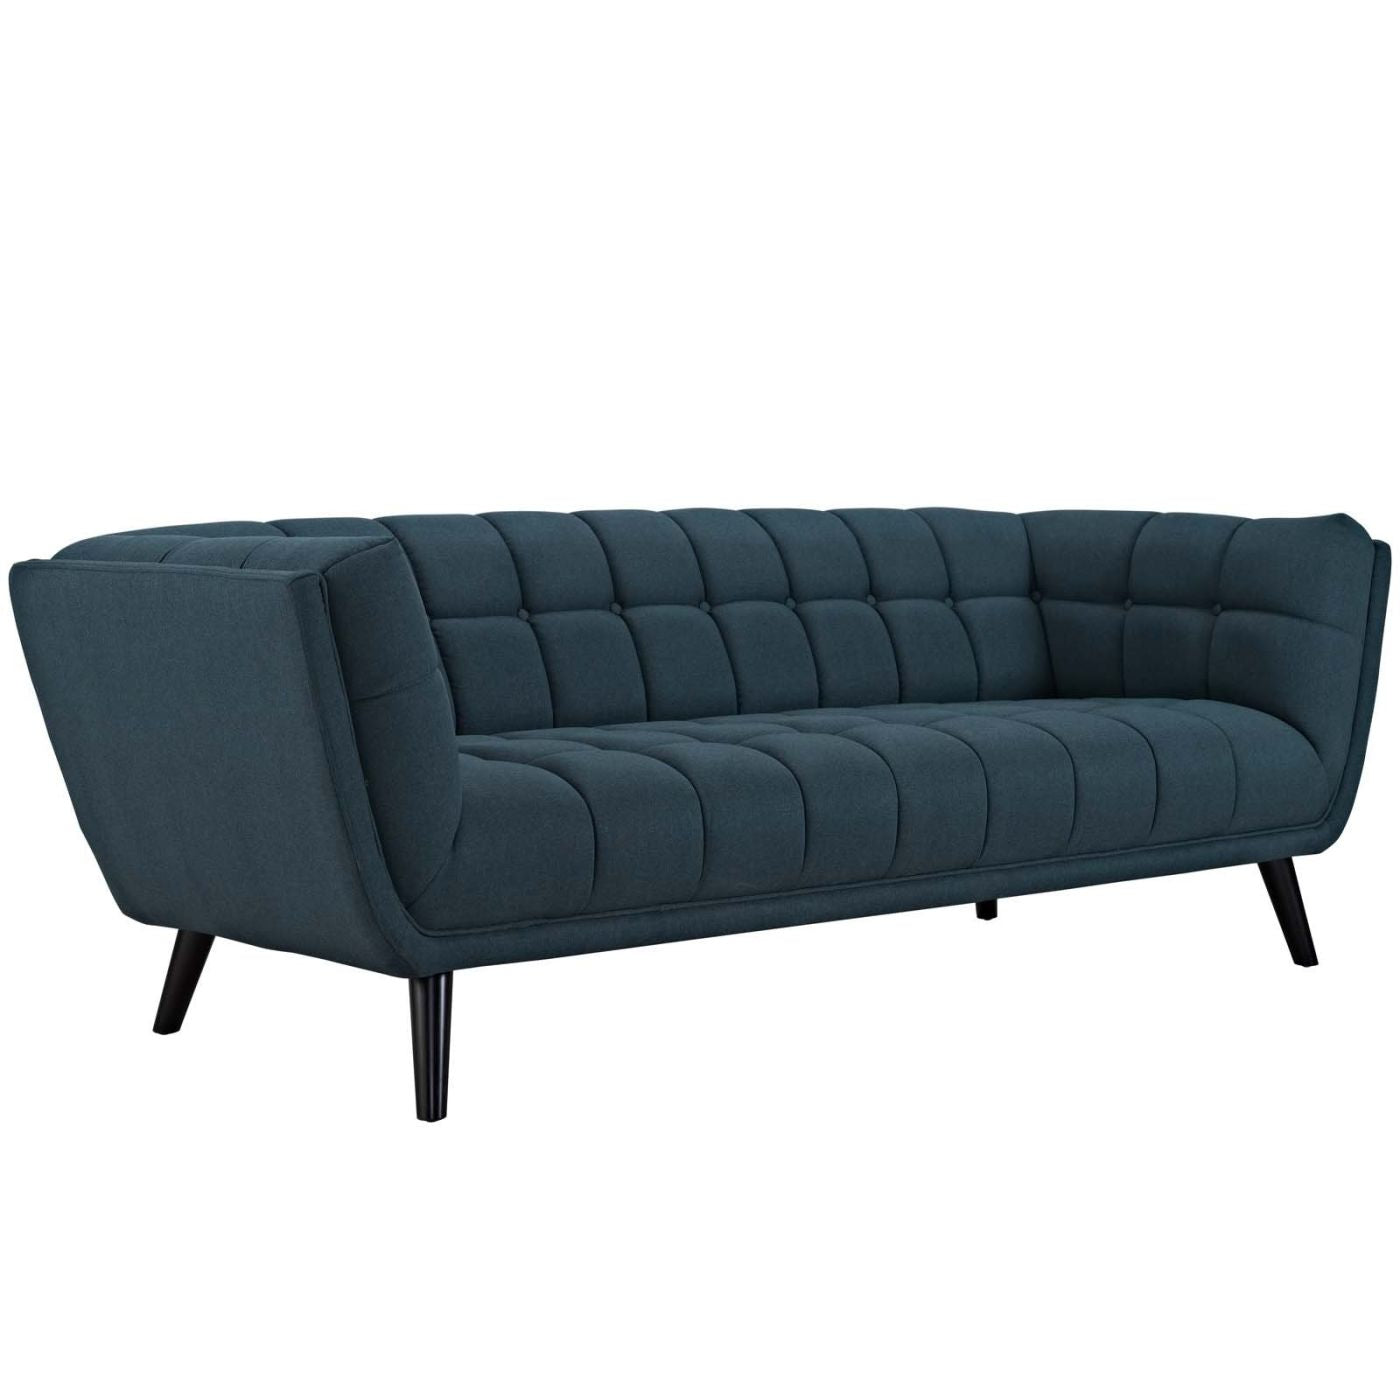 Modway Sofas on sale. EEI-2730-BLU Bestow Chic Luxe Modern Fabric ...